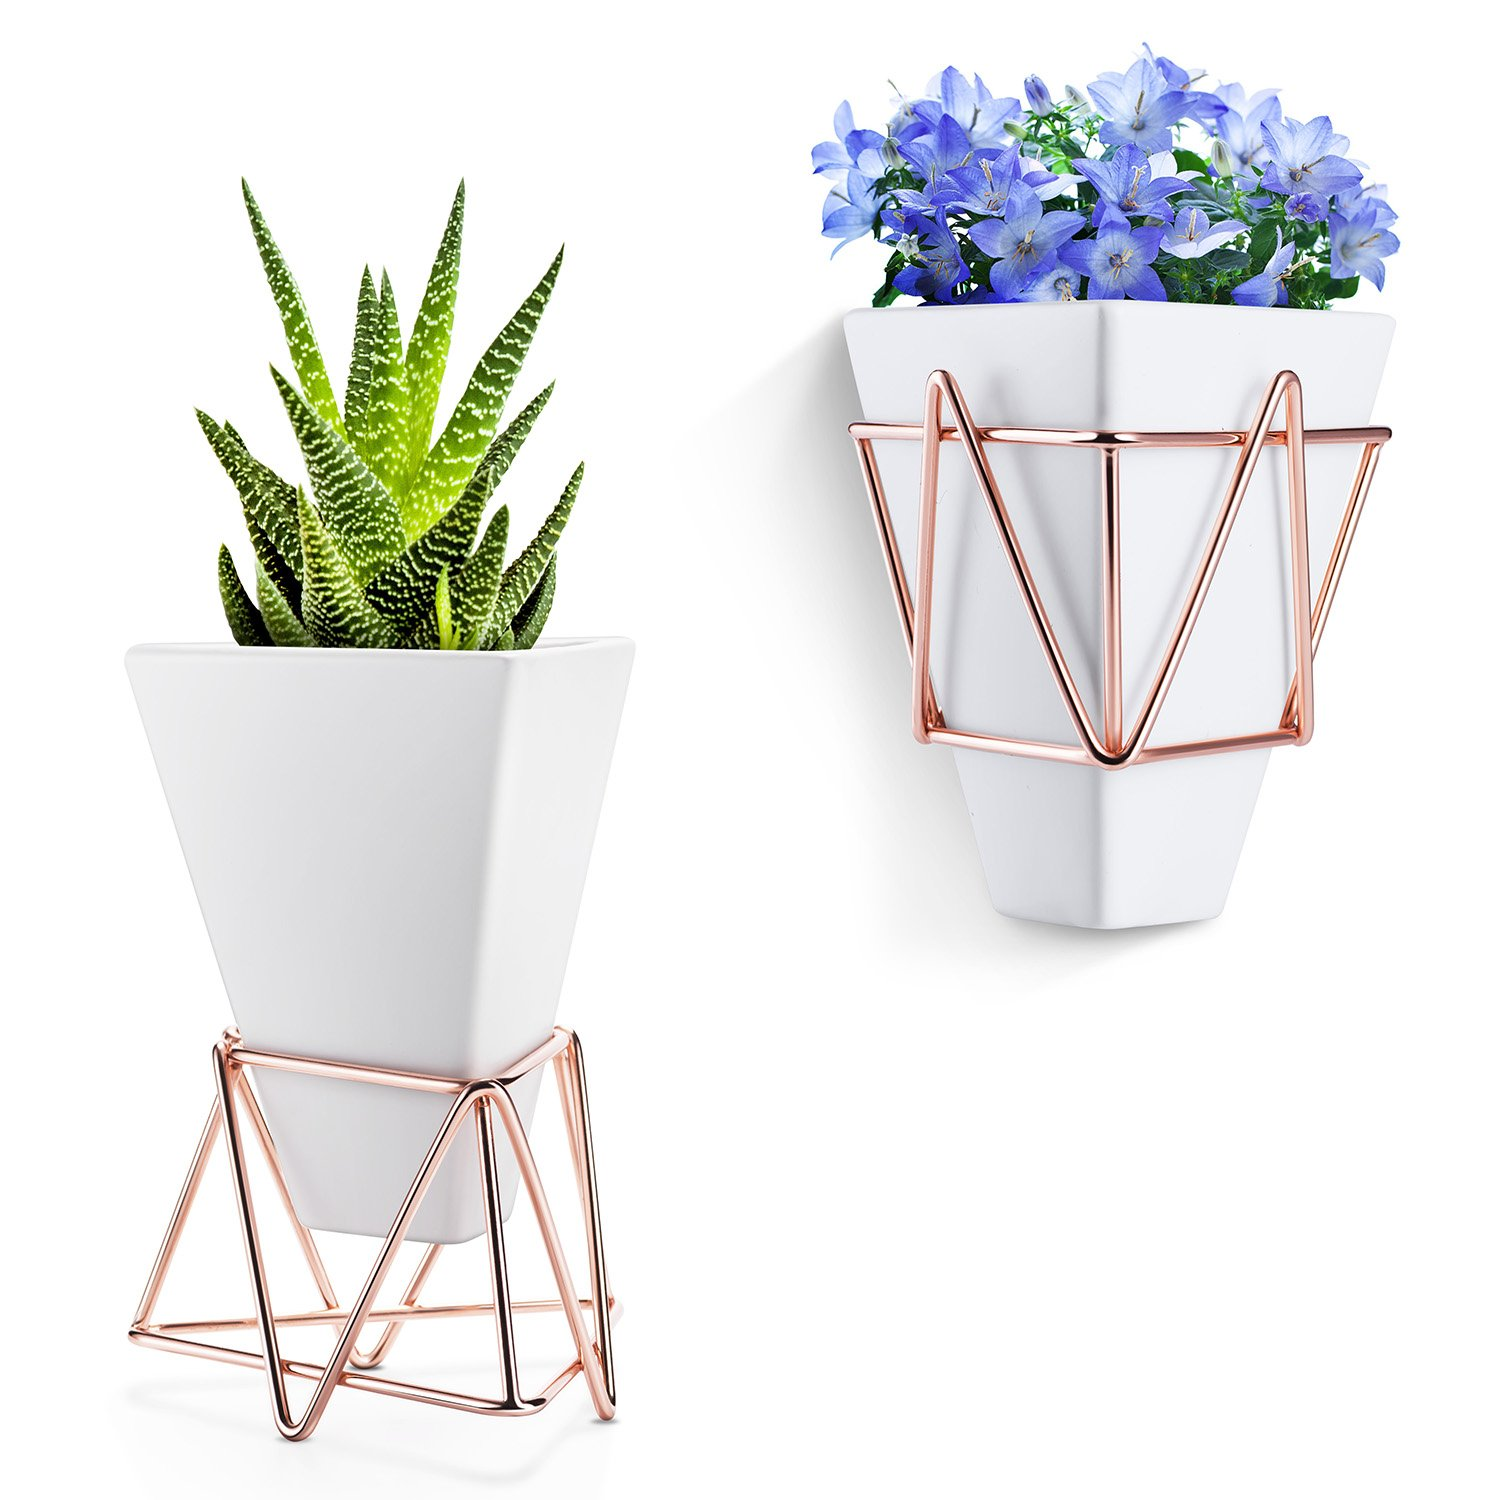 Love-KANKEI Wall Hanging Planter White Ceramic and Copper Pot - Geometric Plant Holder for Succulent Air Plants Mini Cactus Artificial Flowers 100000048